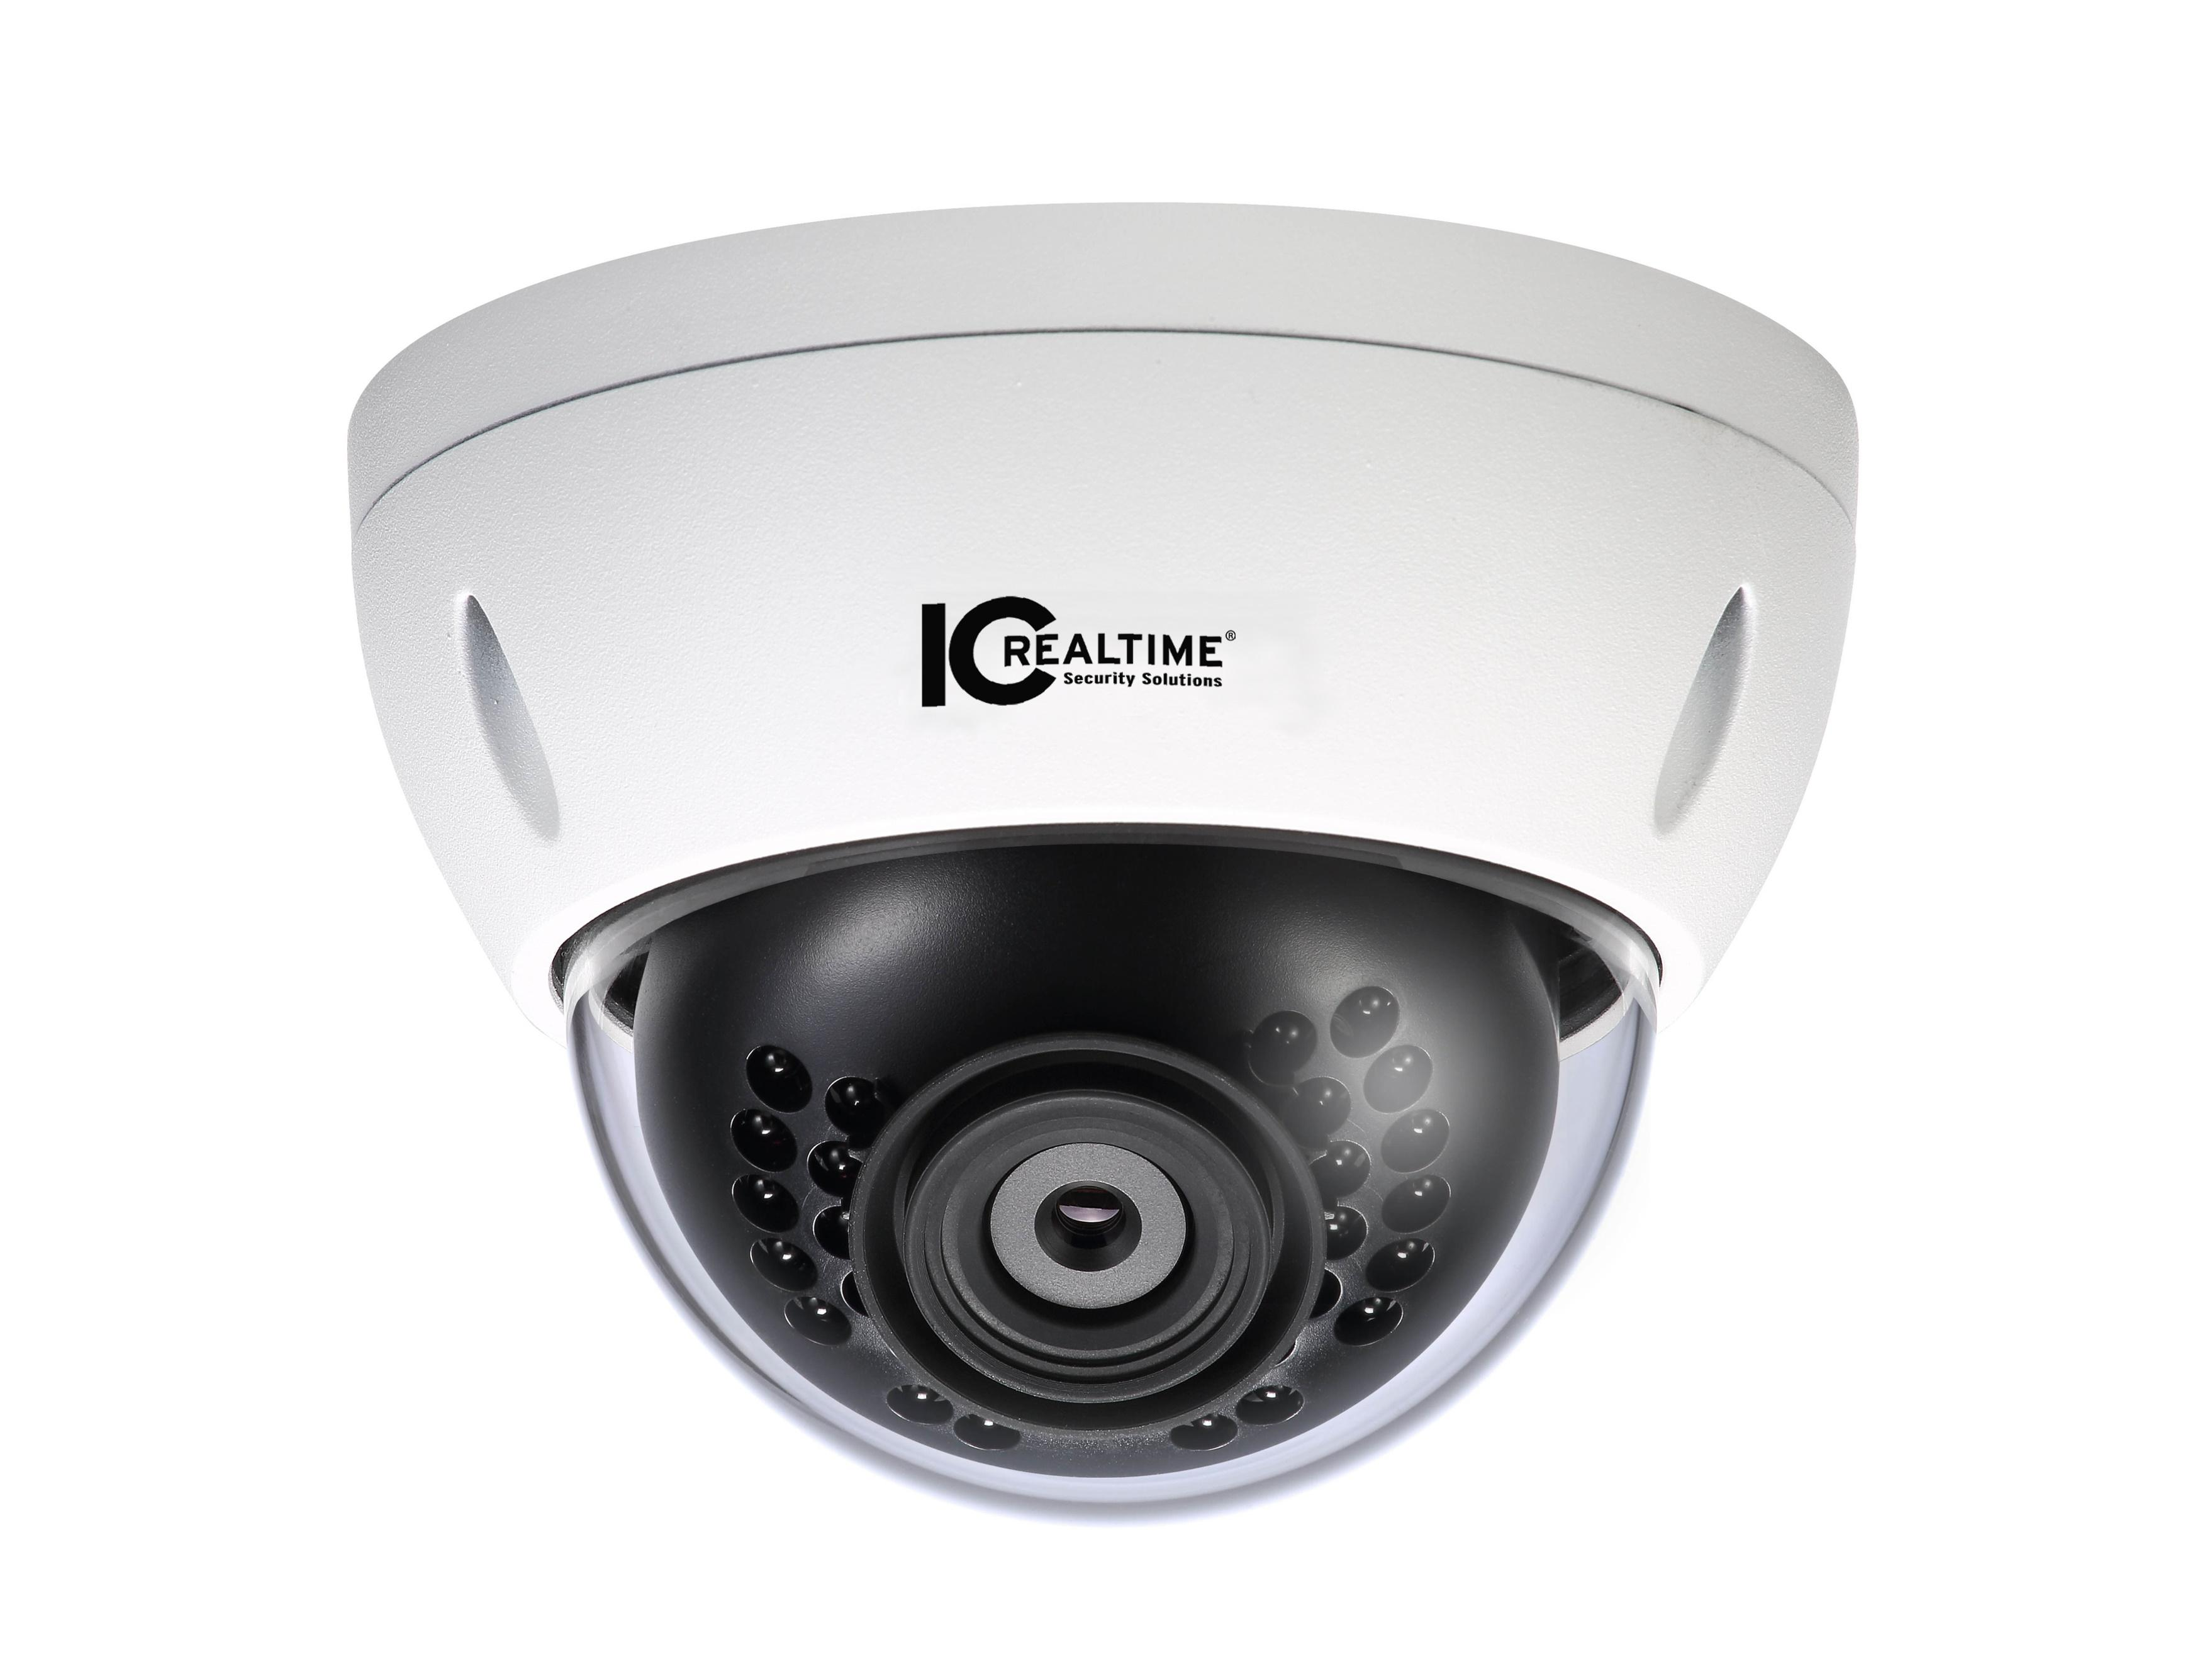 ICIP-DW302S 3MP Mini Dome Camera with WiFi/IR/2.8mm Fixed Lens/12VDC/IP67/IK10 by ICRealtime